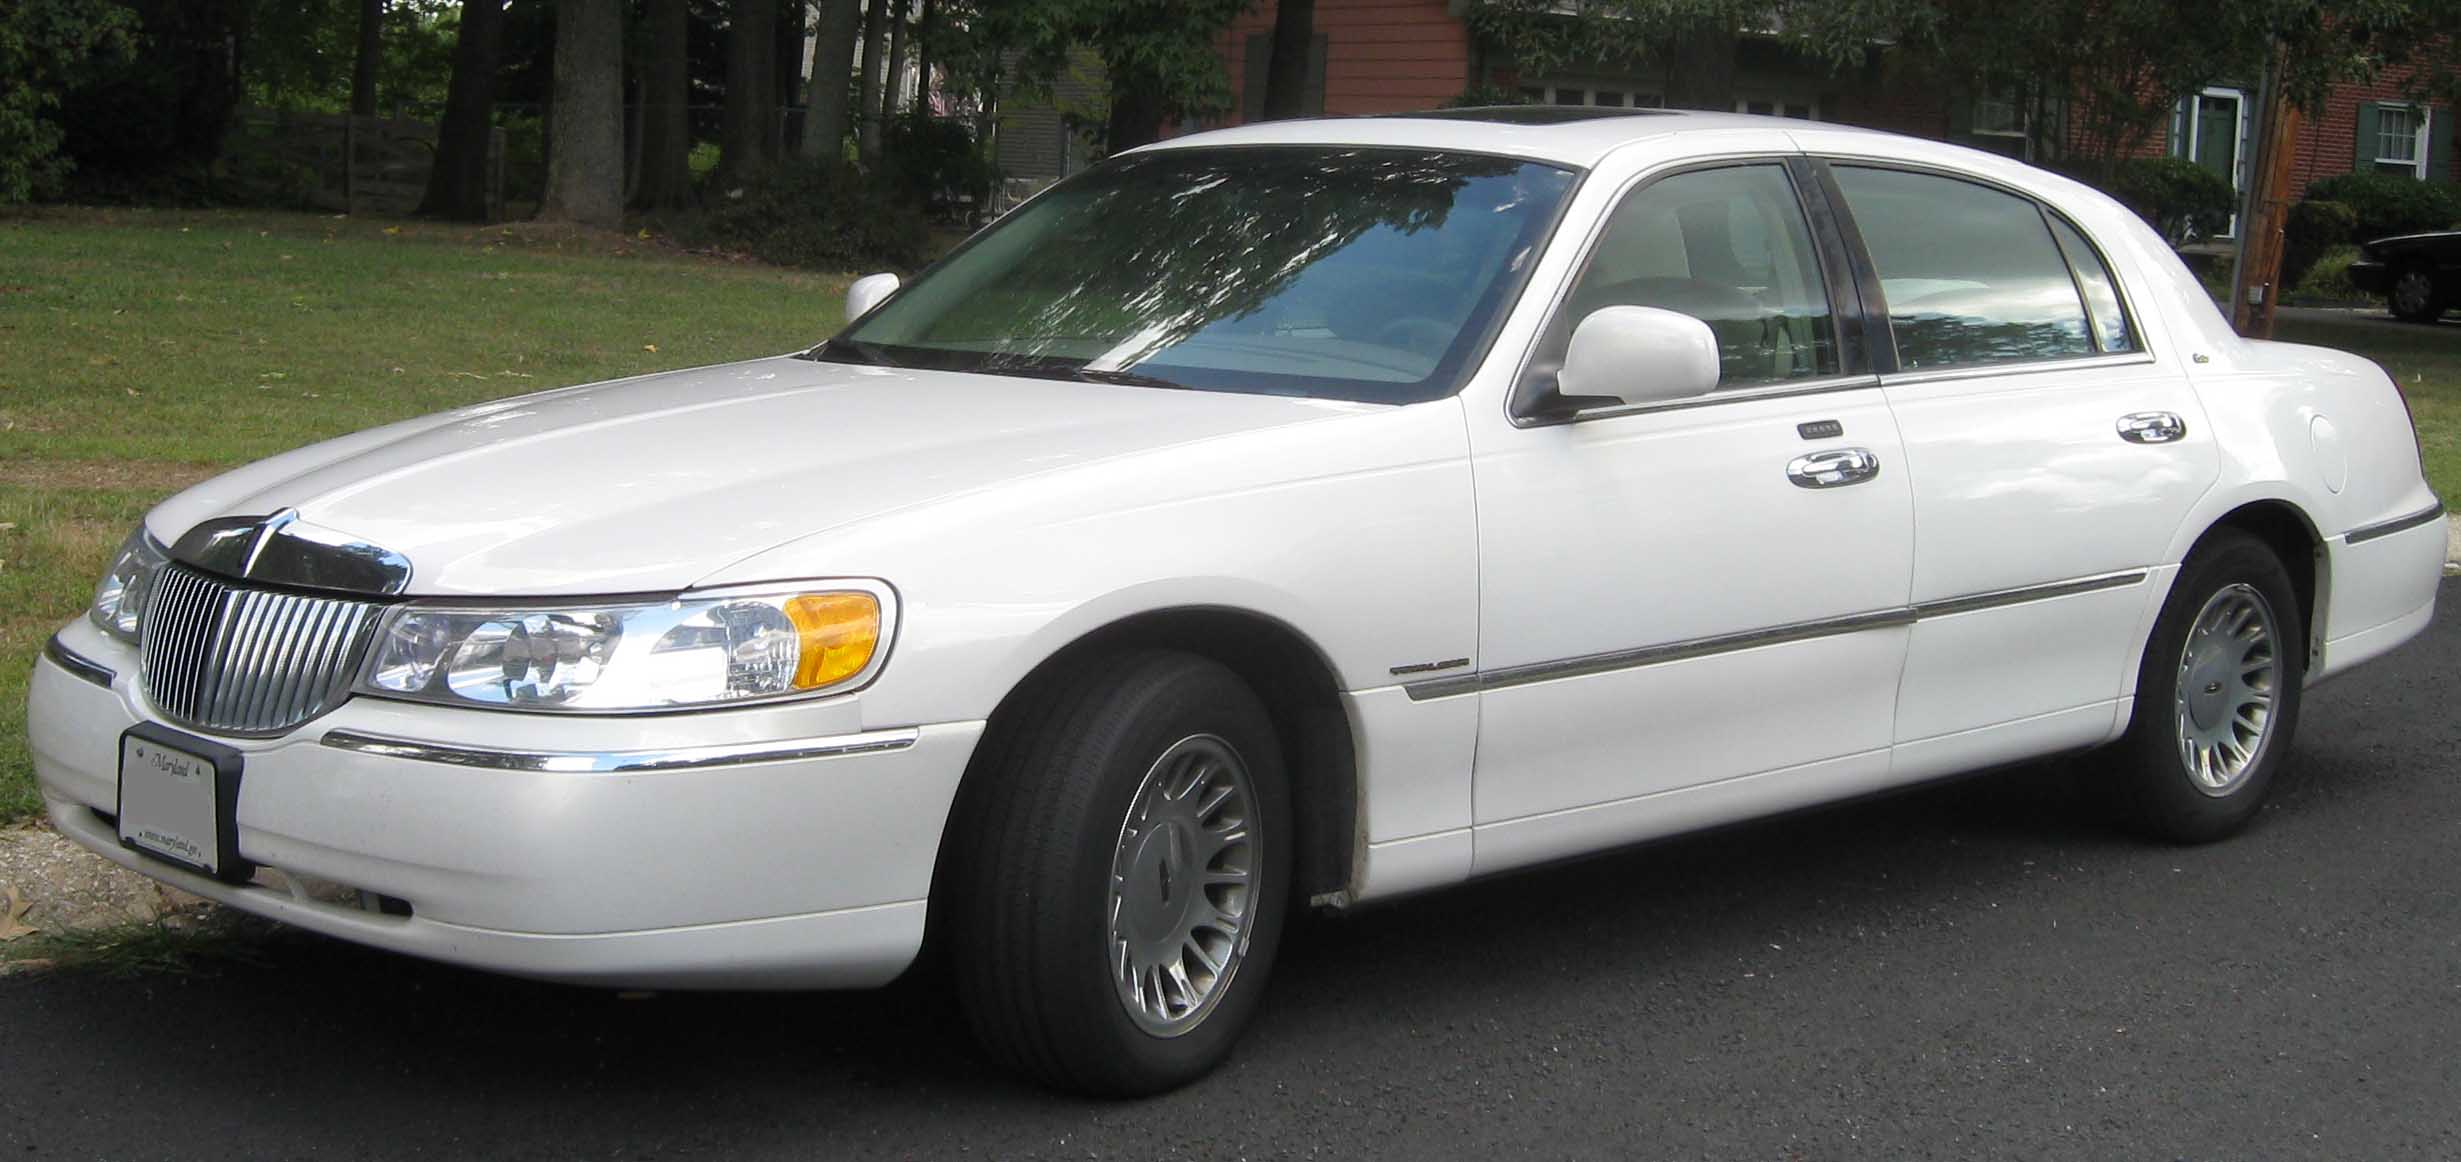 2010 Lincoln Town Car Image 8